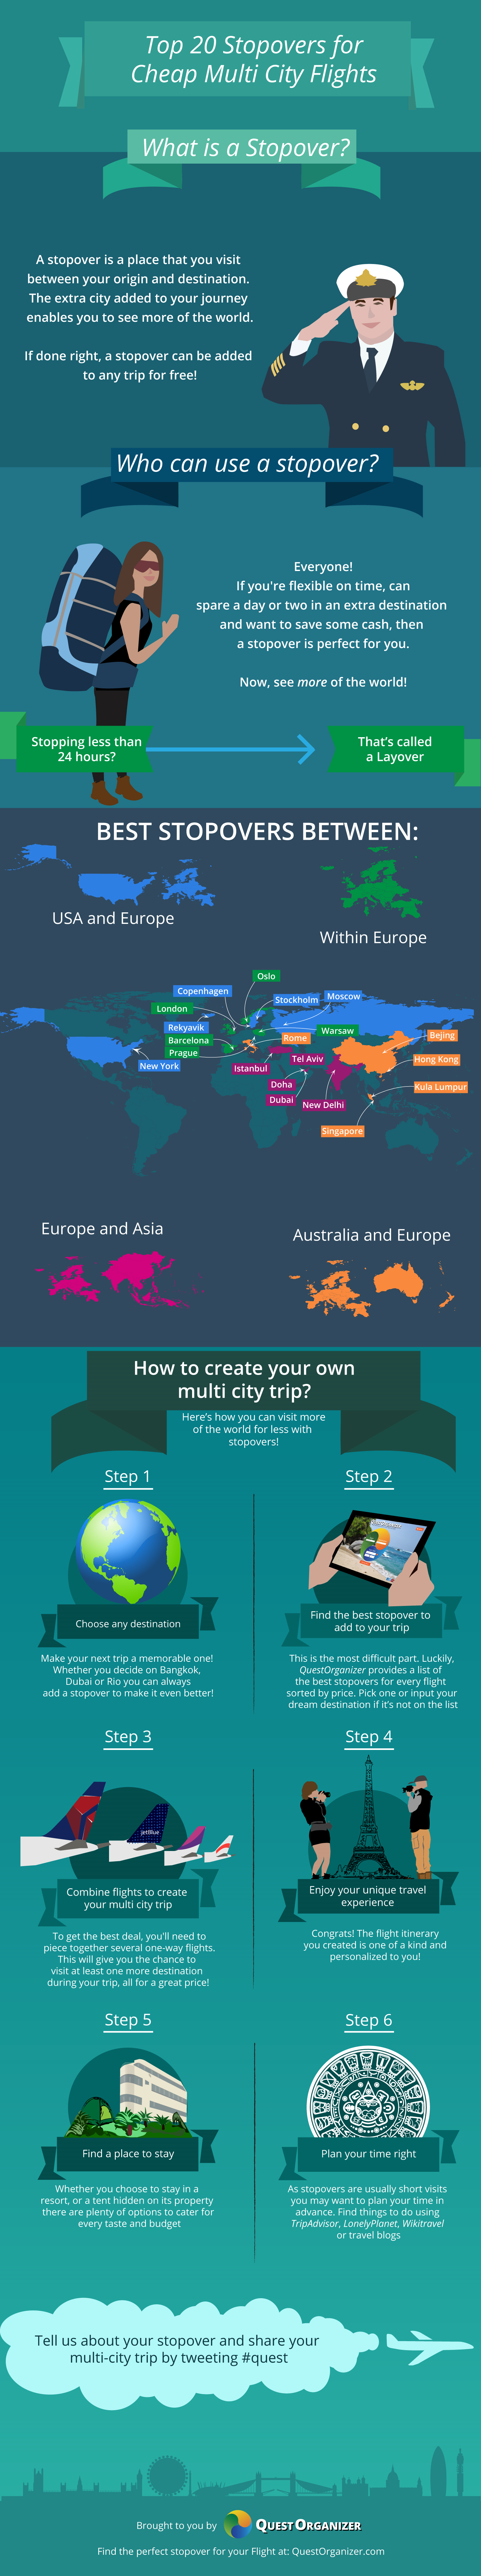 Top 20 Stopovers for Cheap Multi City Flights Infographic